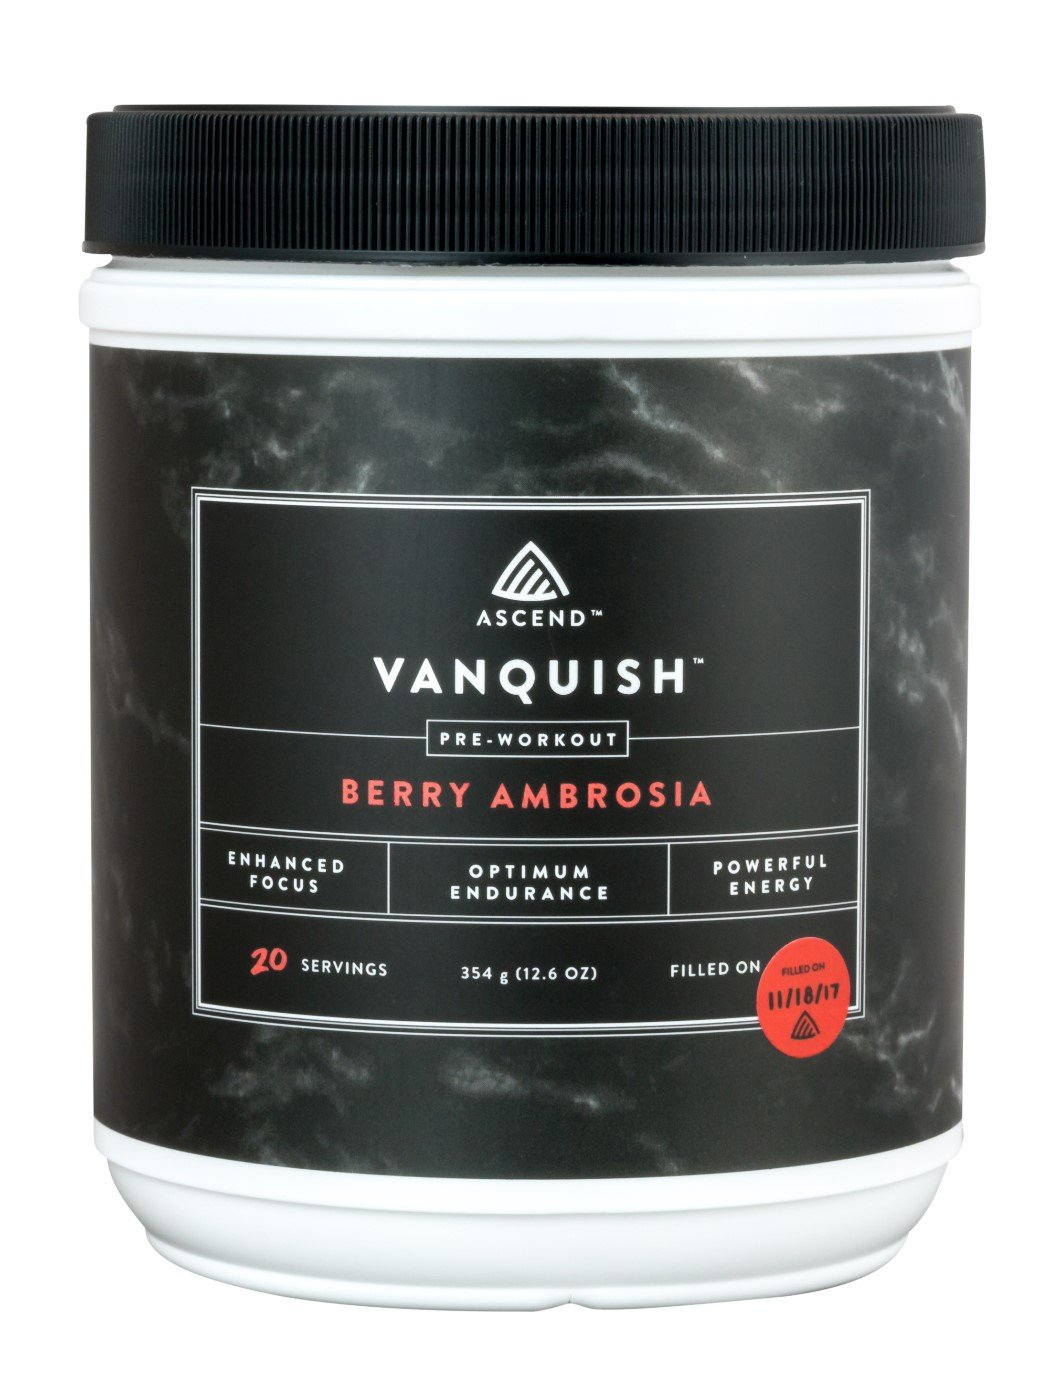 Ascend Vanquish Pre Workout Supplement - All Natural & Safe Energy/Nitric Oxide Preworkout Drink for Focus, Endurance & Strength During Workout. No Artificial Flavors, Sweeteners or Colors.